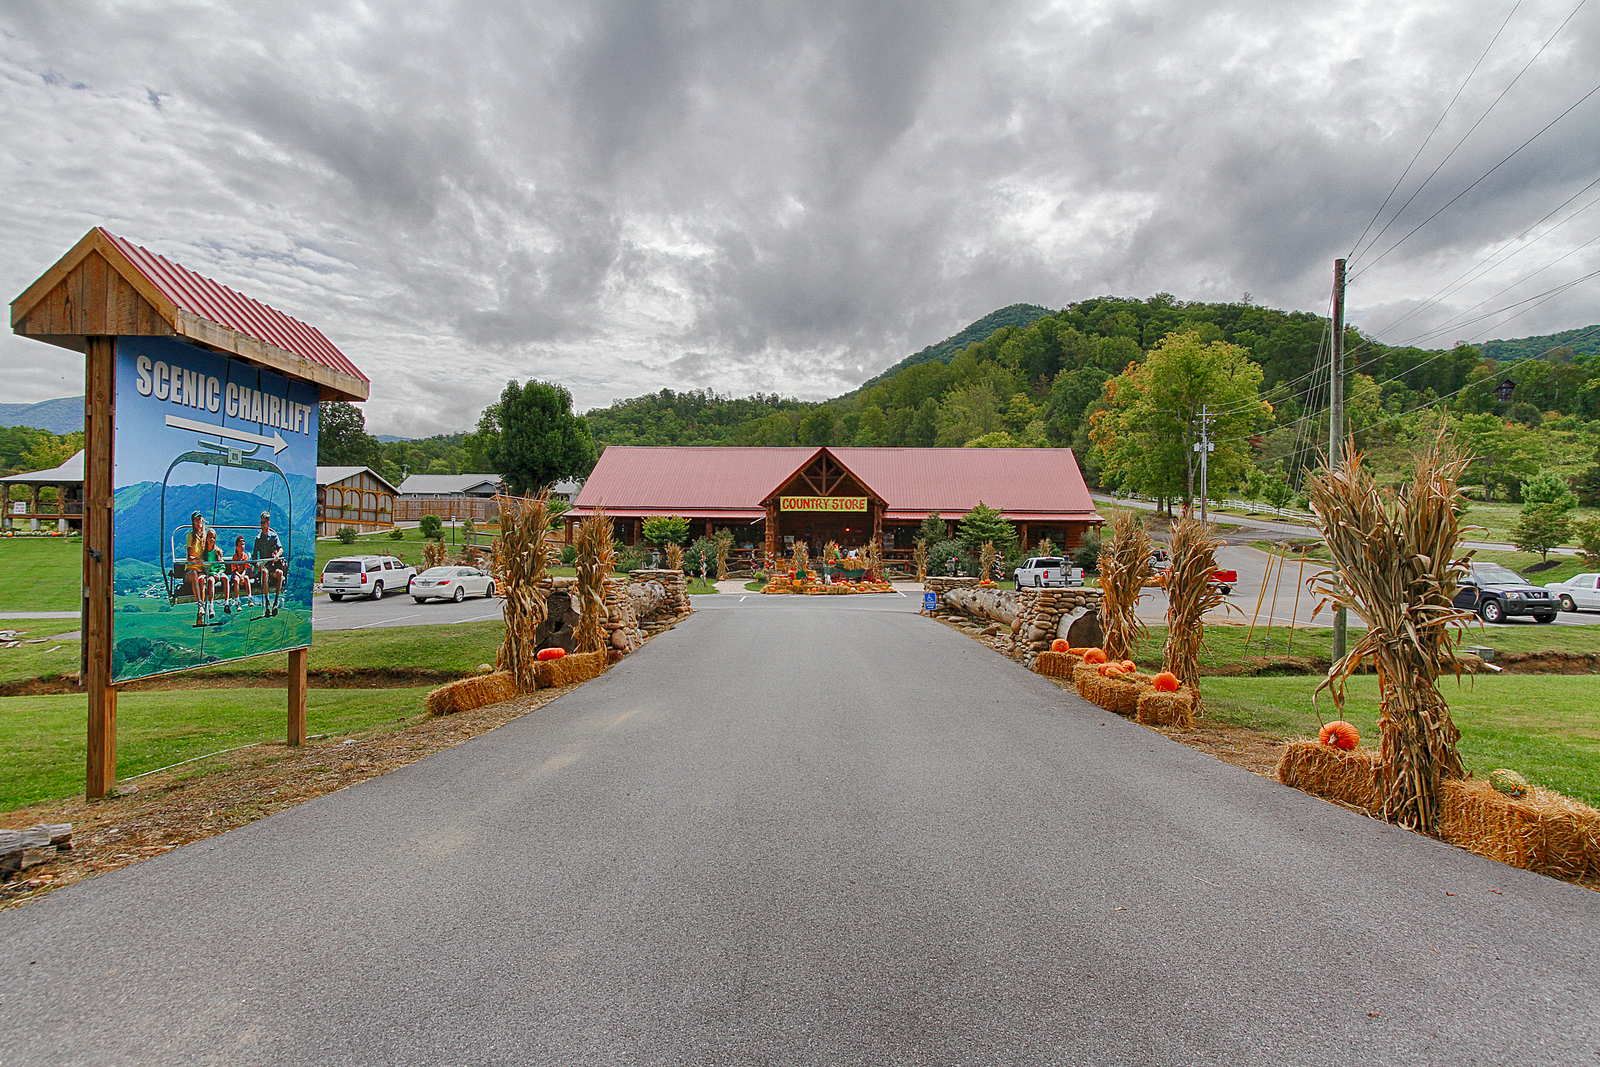 sold – absolute real estate auction – 65 acres smoky mountain resort